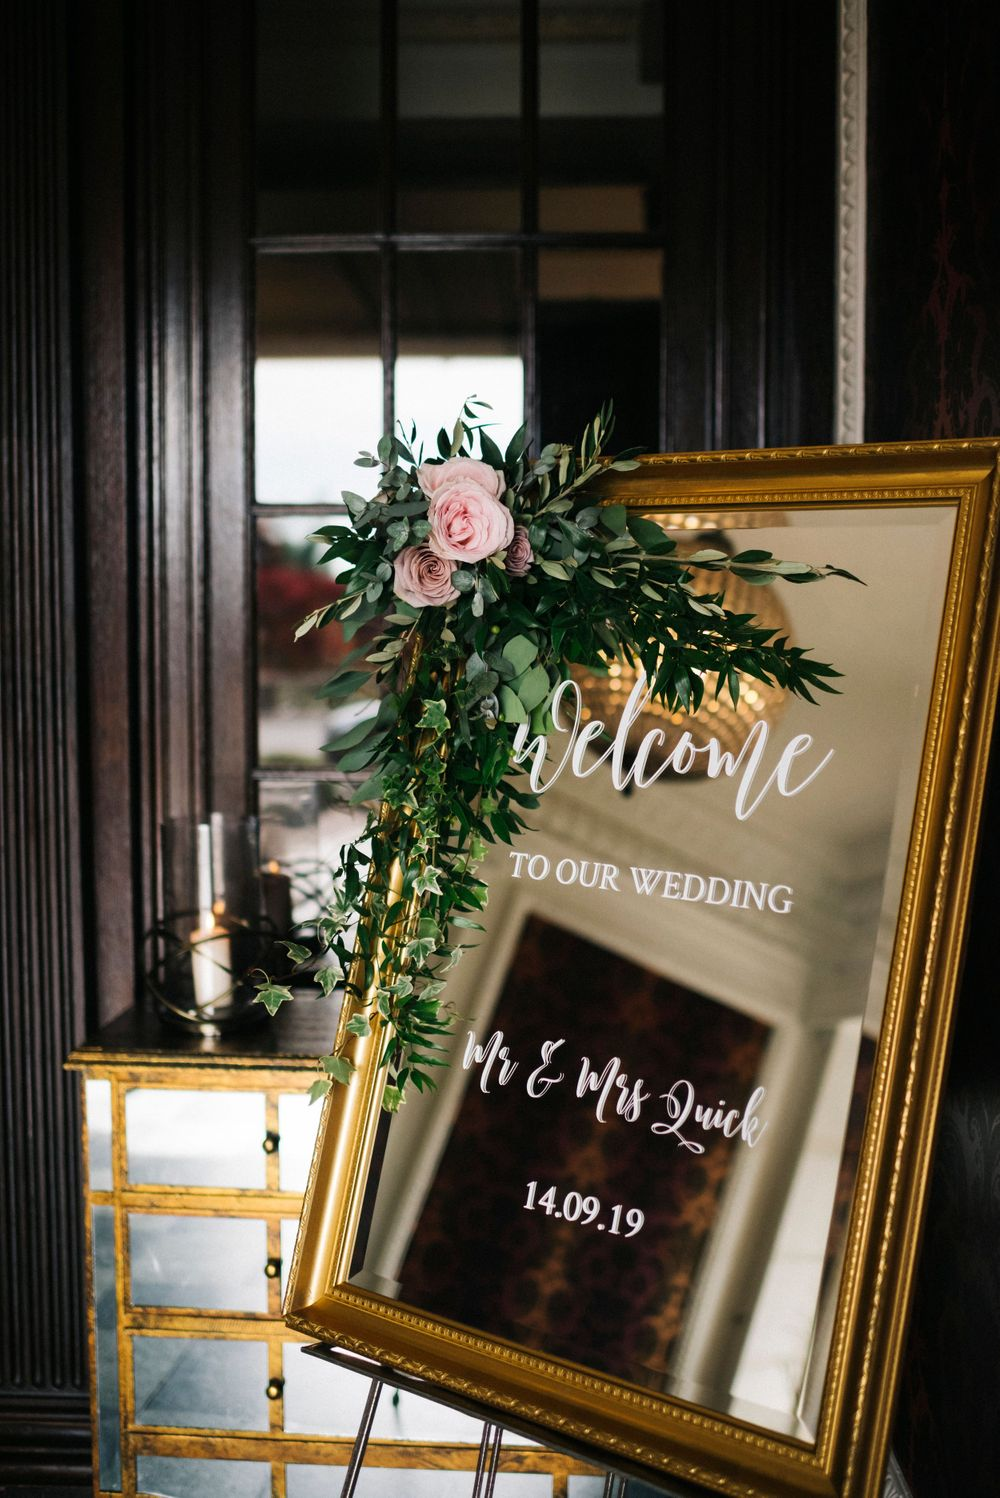 wedding flowers, welcome to our wedding sign, gold mirror wedding sign, eaves hall wedding photographer